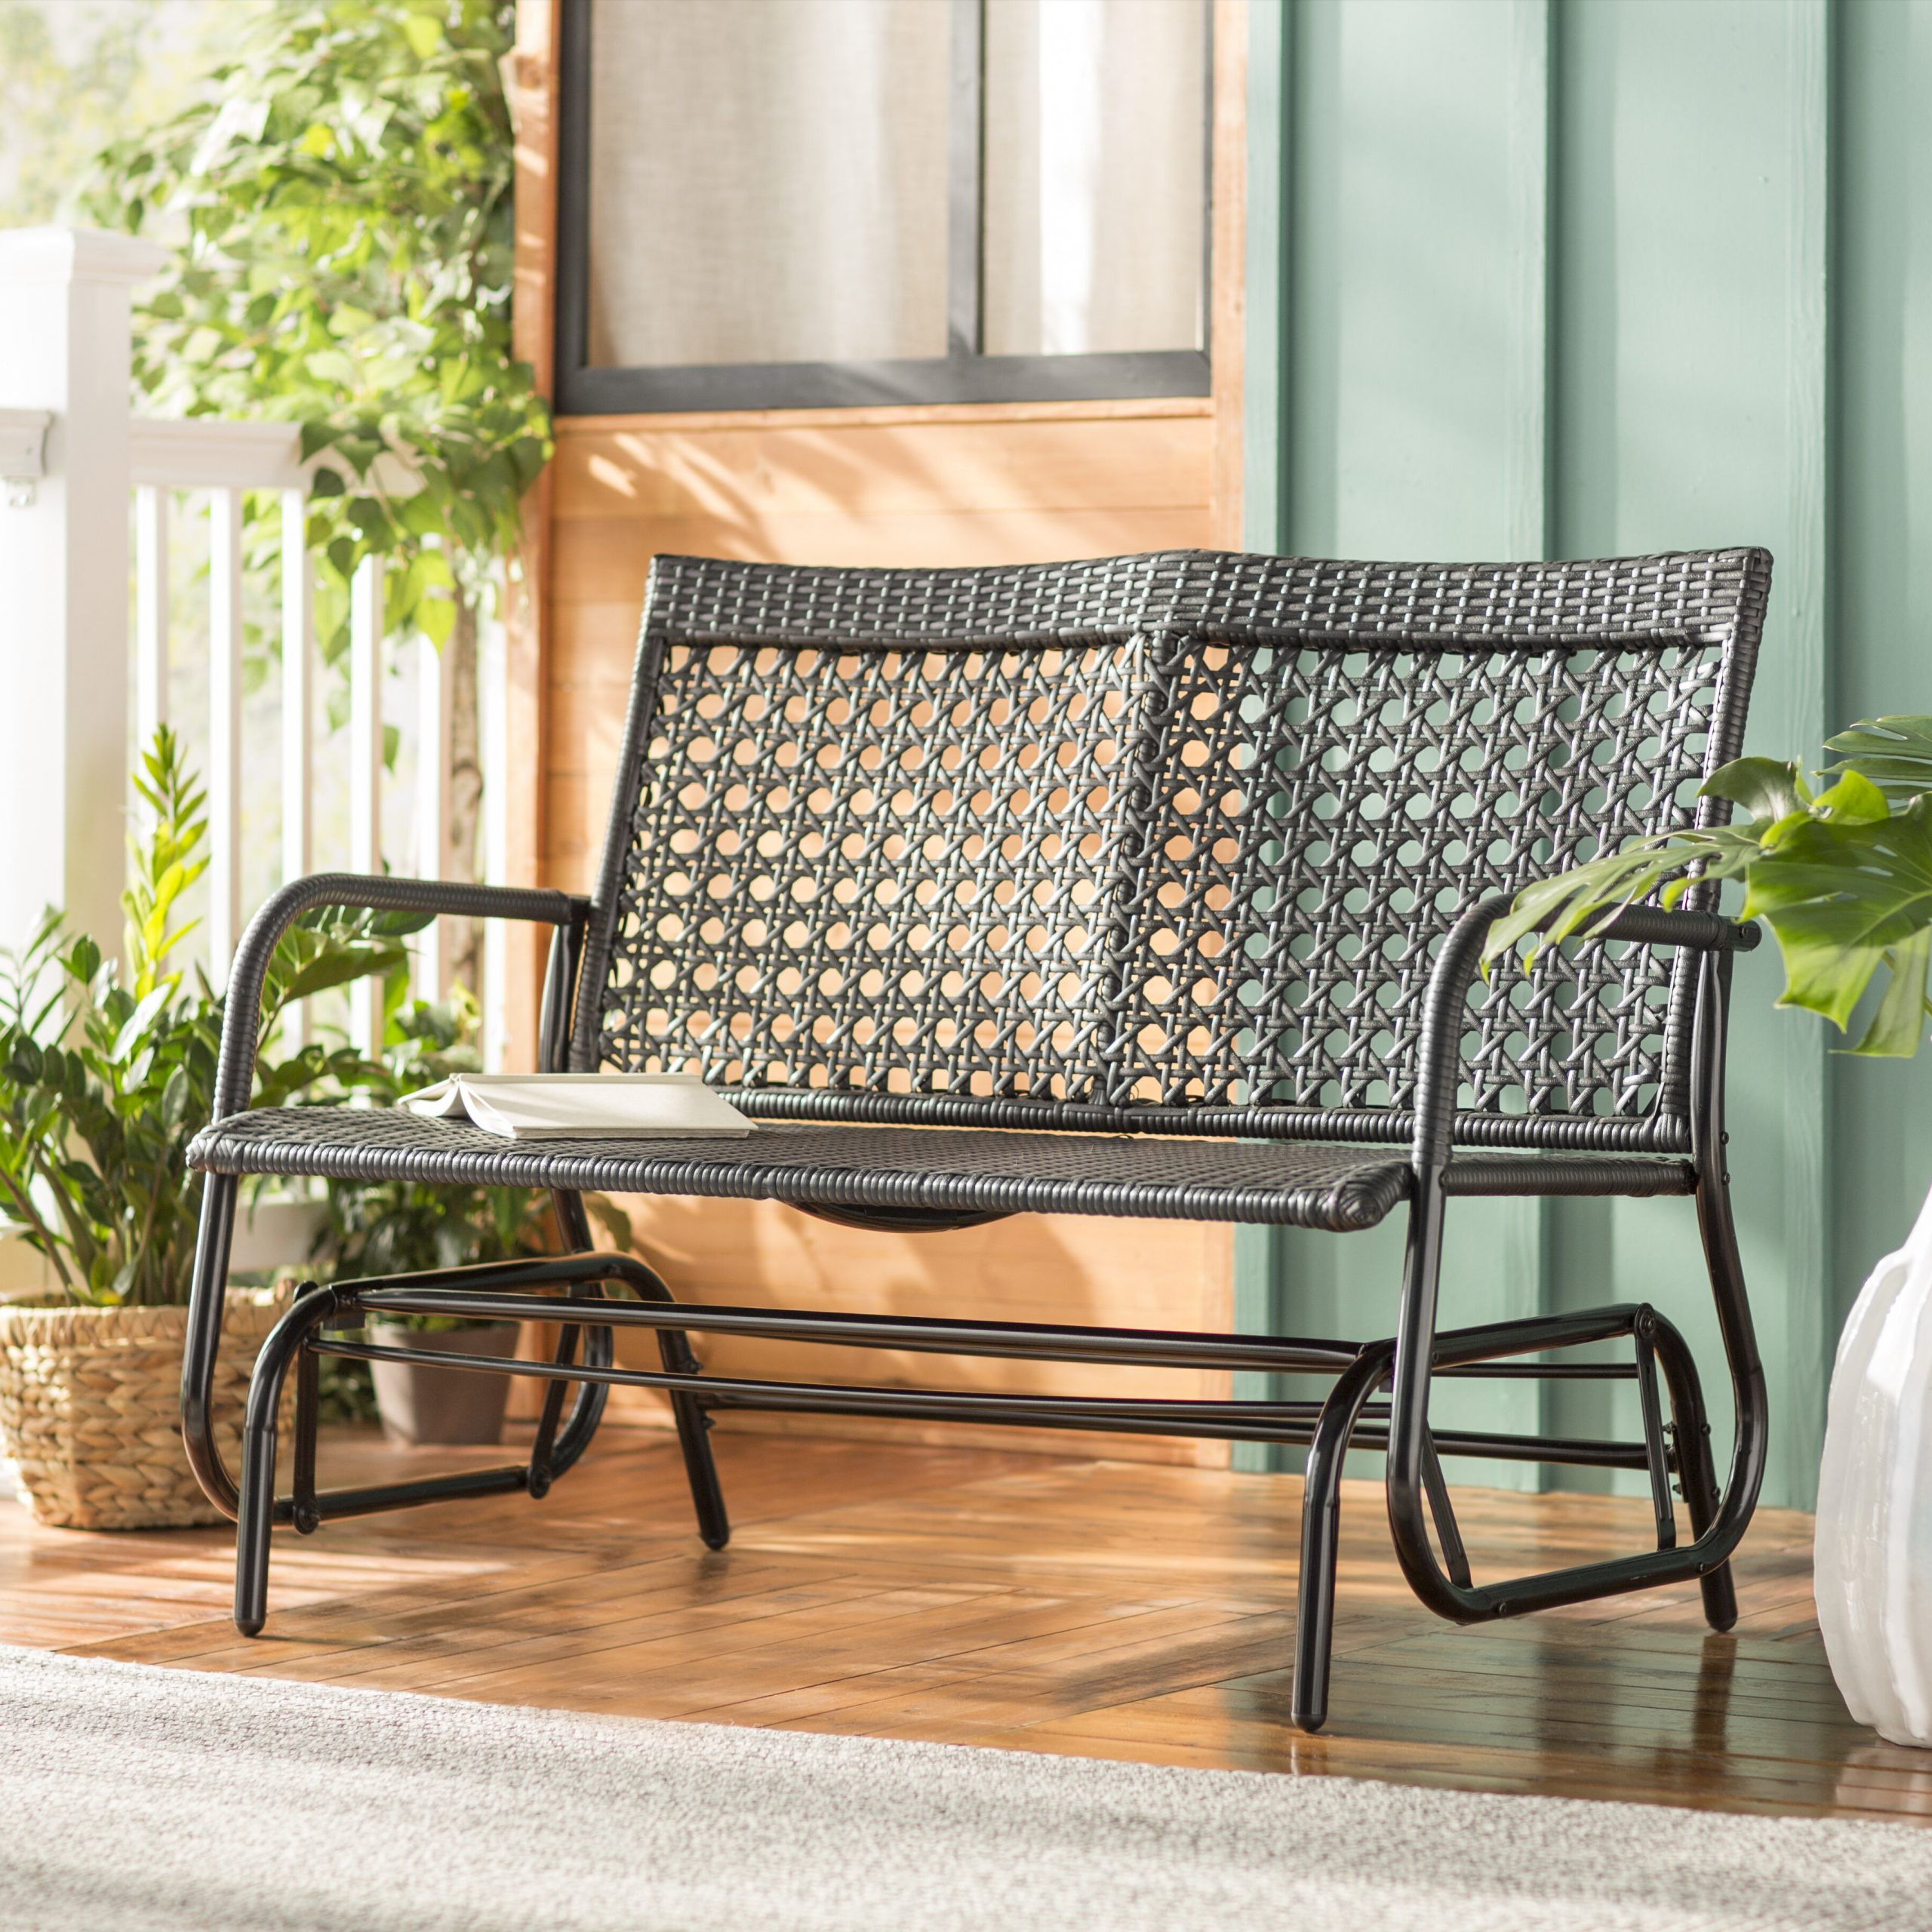 Shupe Steel Rattan Outdoor Patio Double Bench Glider Regarding Iron Double Patio Glider Benches (Image 23 of 25)